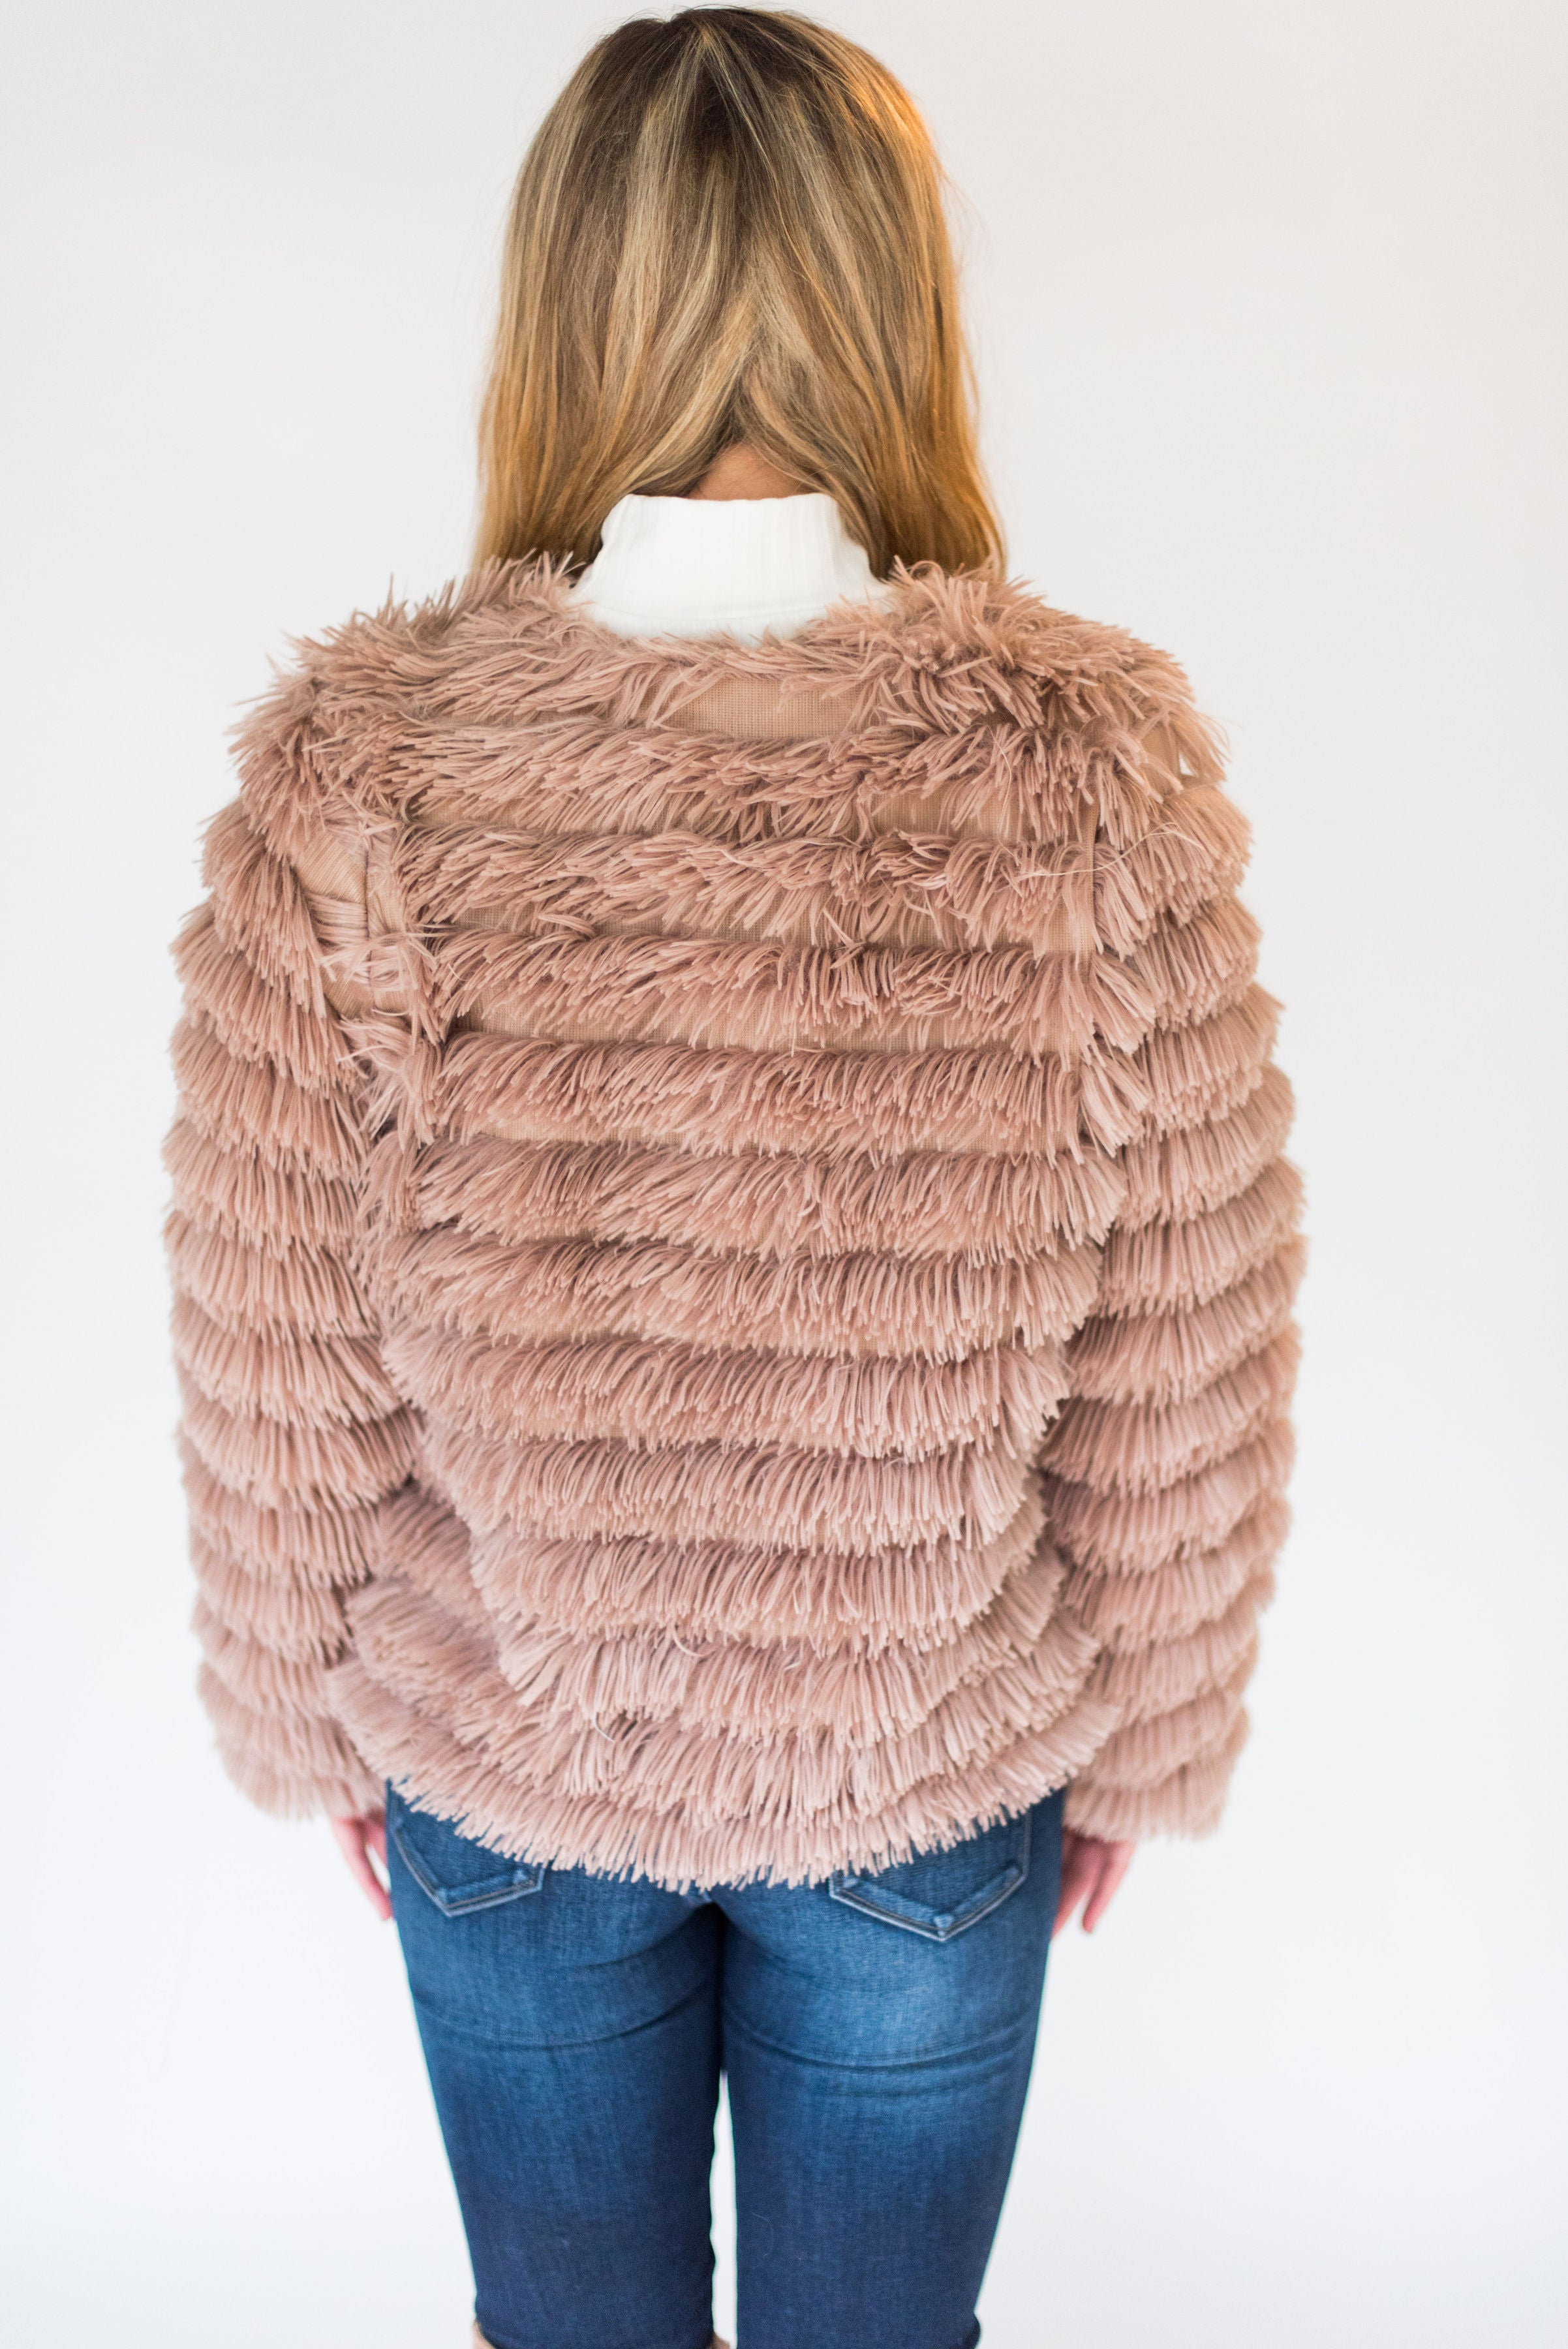 Fur-ever Yours Layered Faux Fur Jacket:  Cream & Mocha